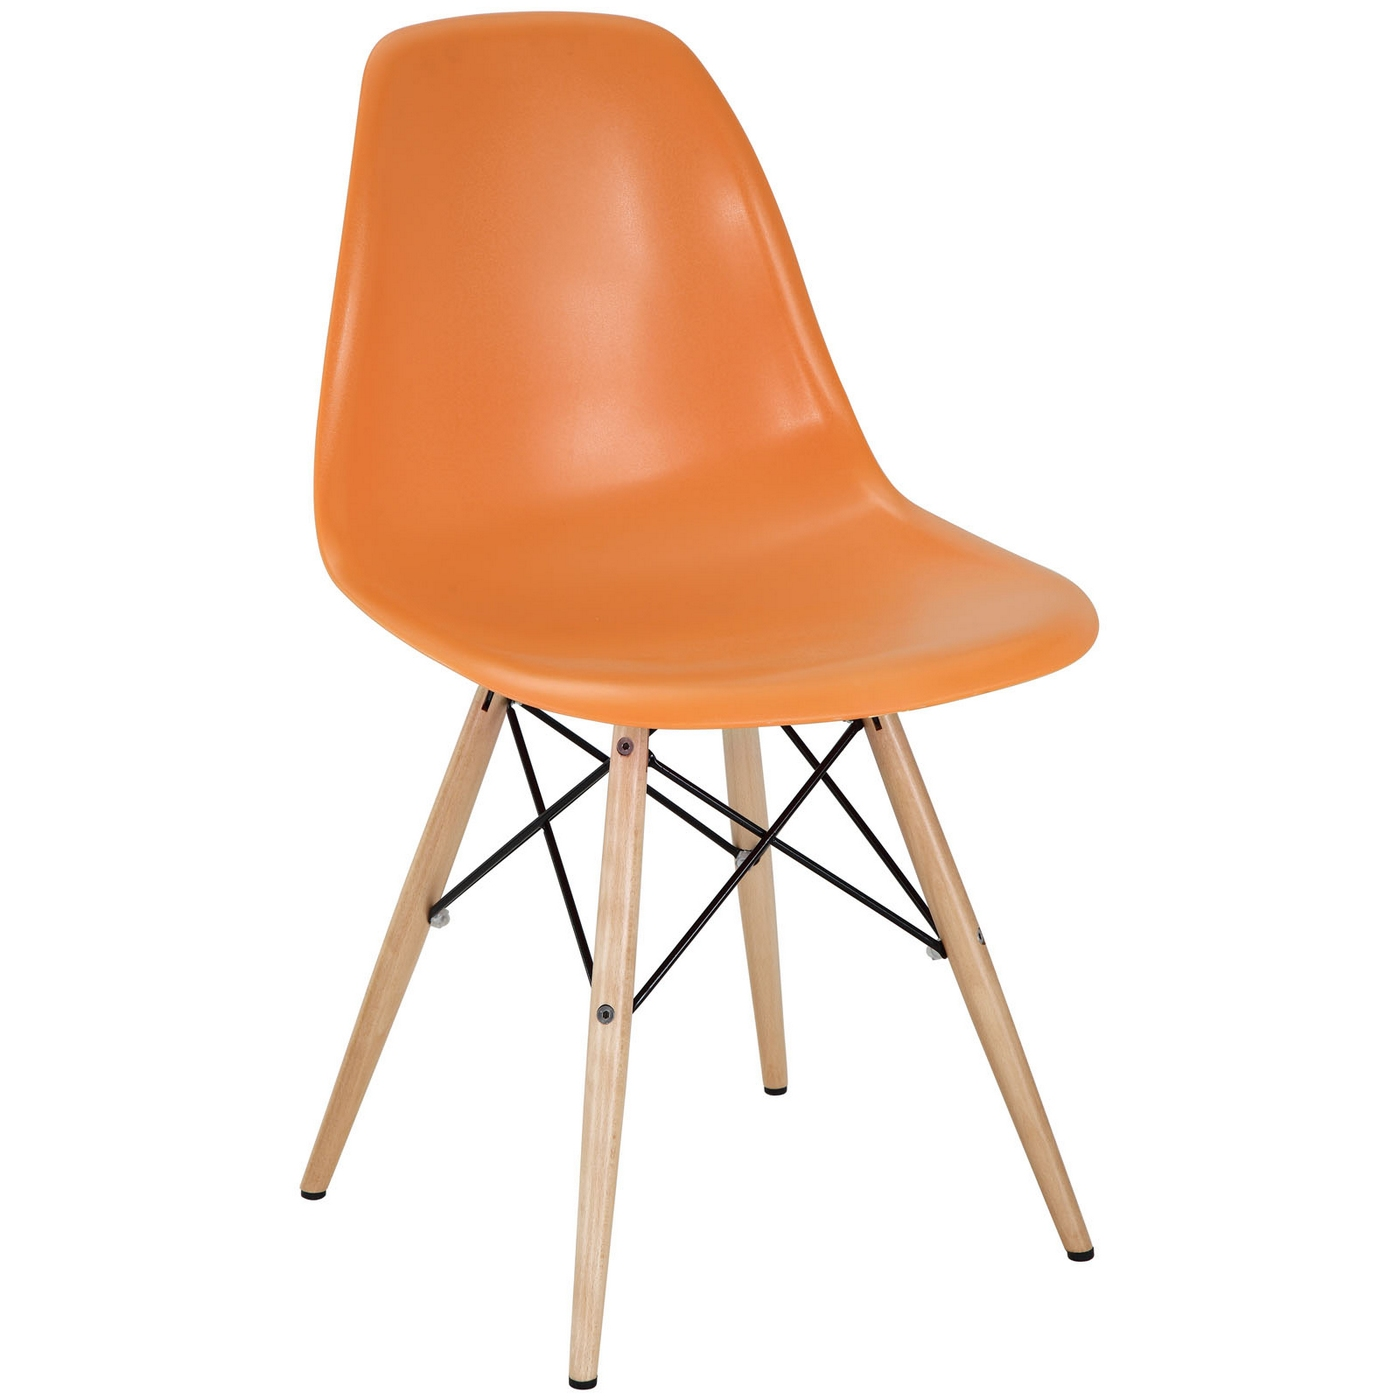 Pyramid modern plastic side chair with wood legs steel